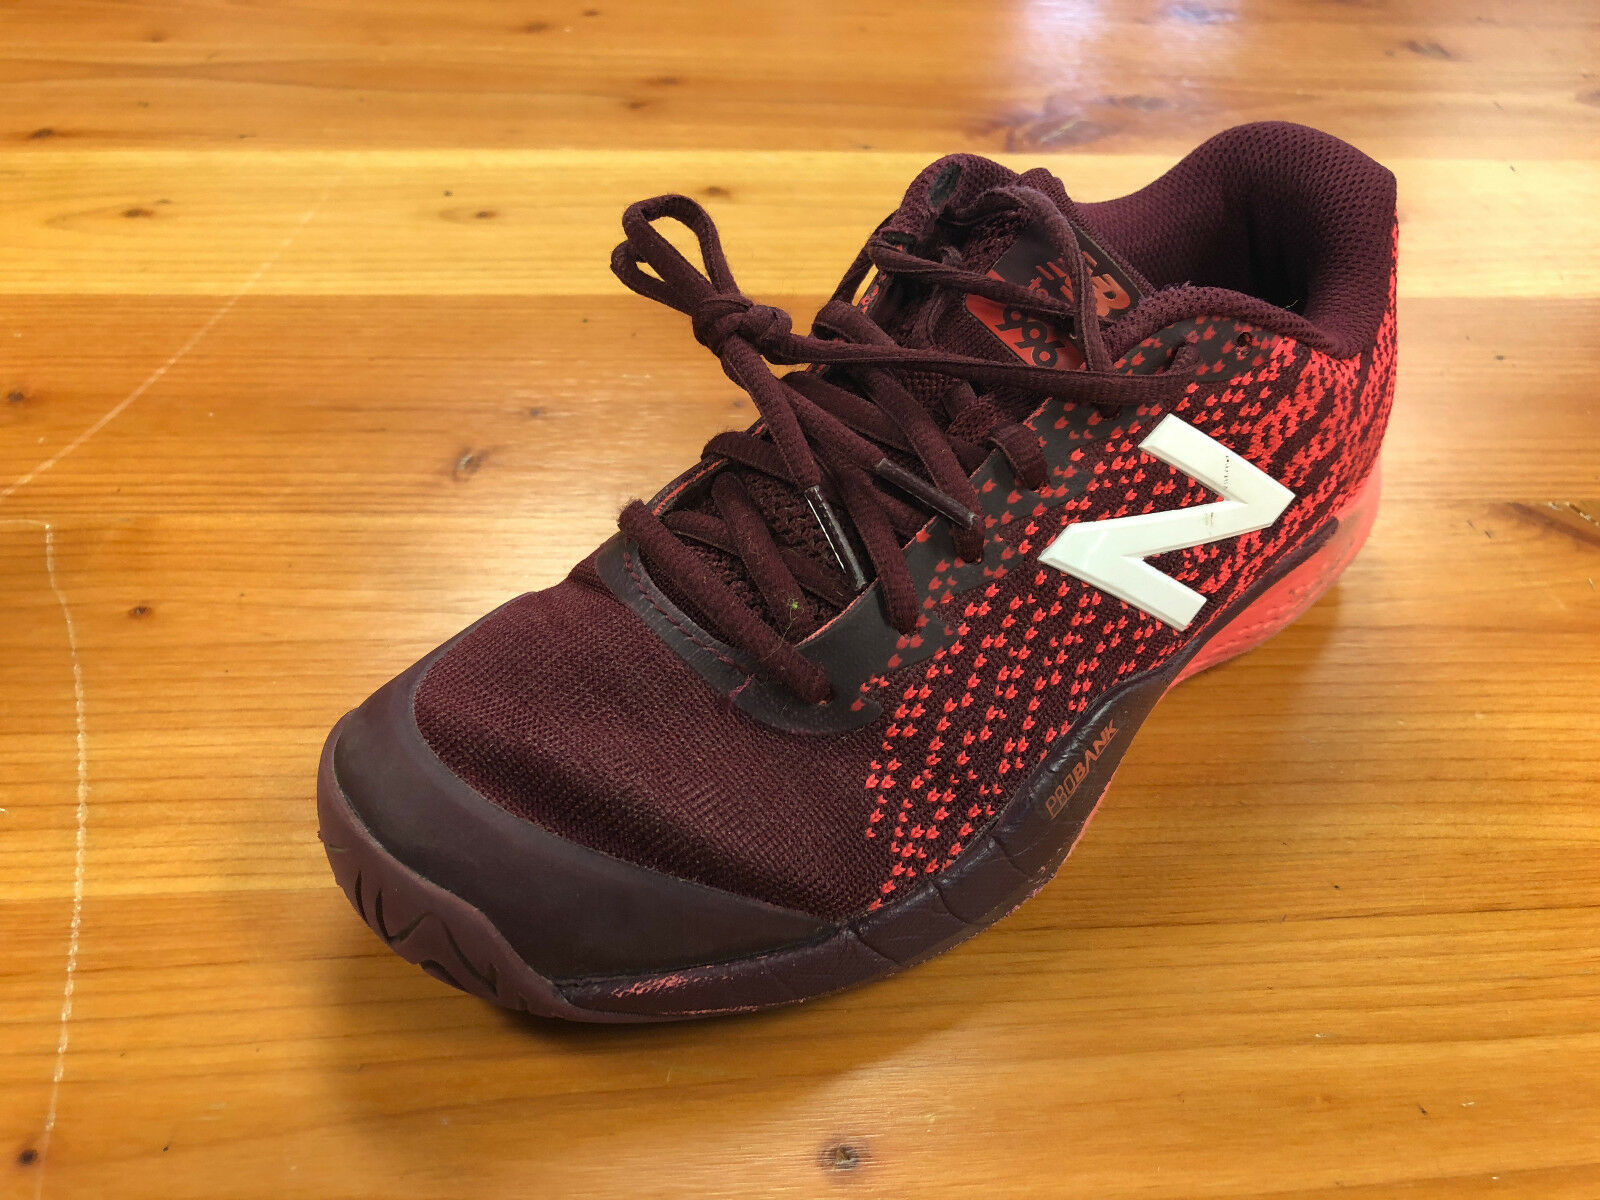 Women's New Balance Flare Preowned shoes Size 7.5